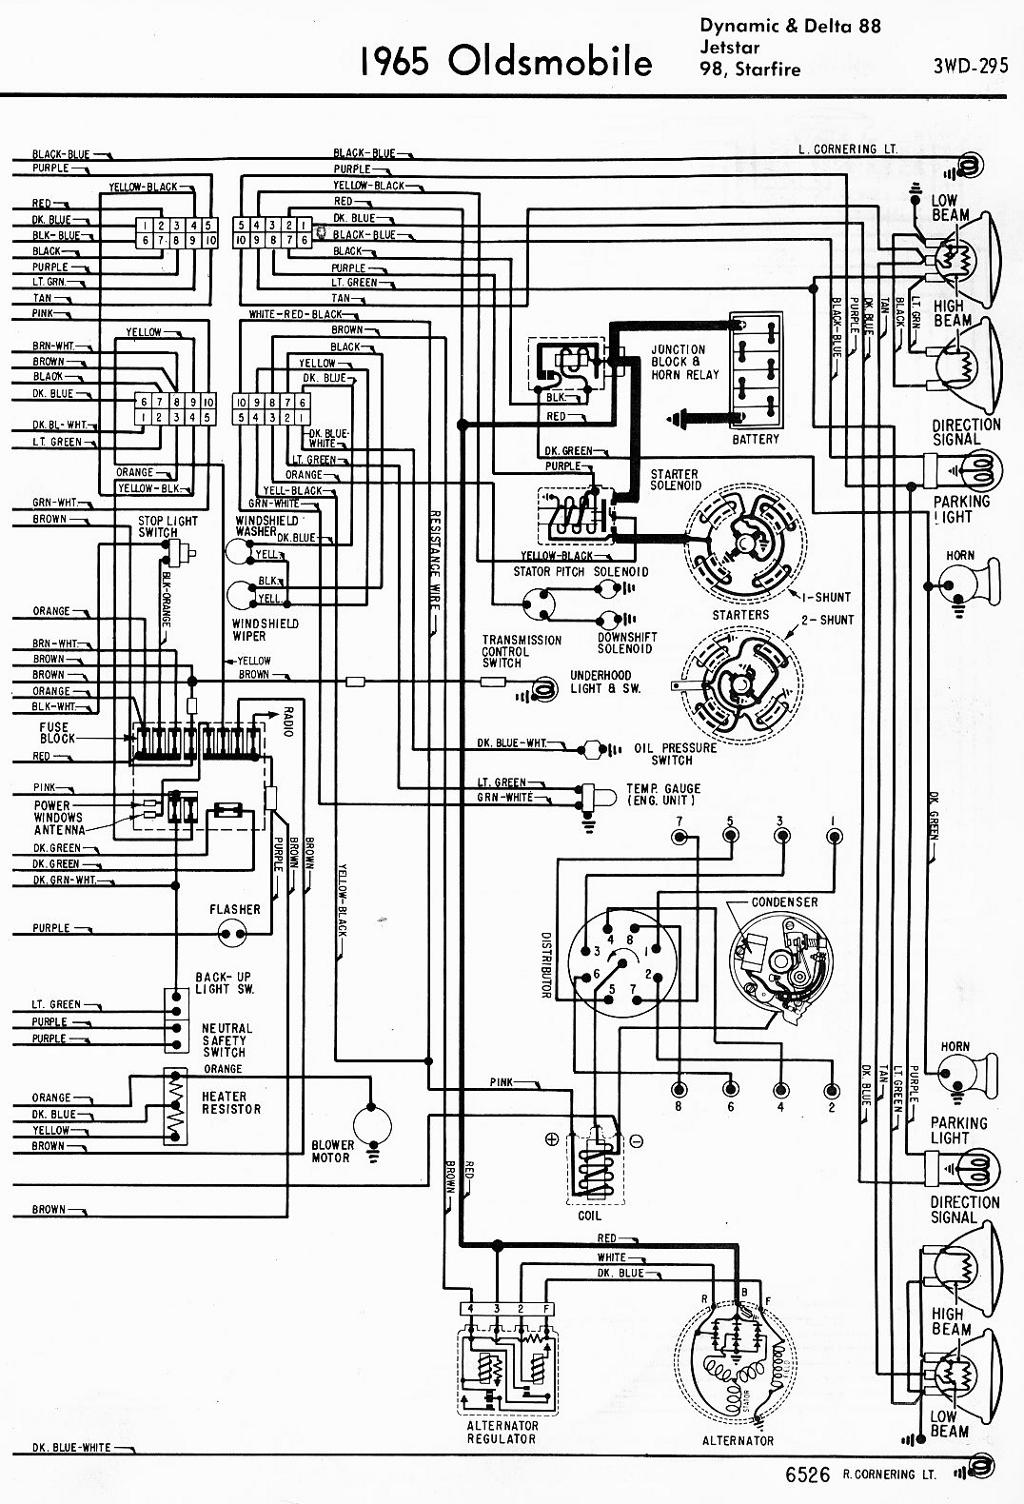 small resolution of 1998 oldsmobile 88 wiring diagram wiring diagram for professional u2022 1955 oldsmobile 88 wiring diagram oldsmobile 88 wiring diagram